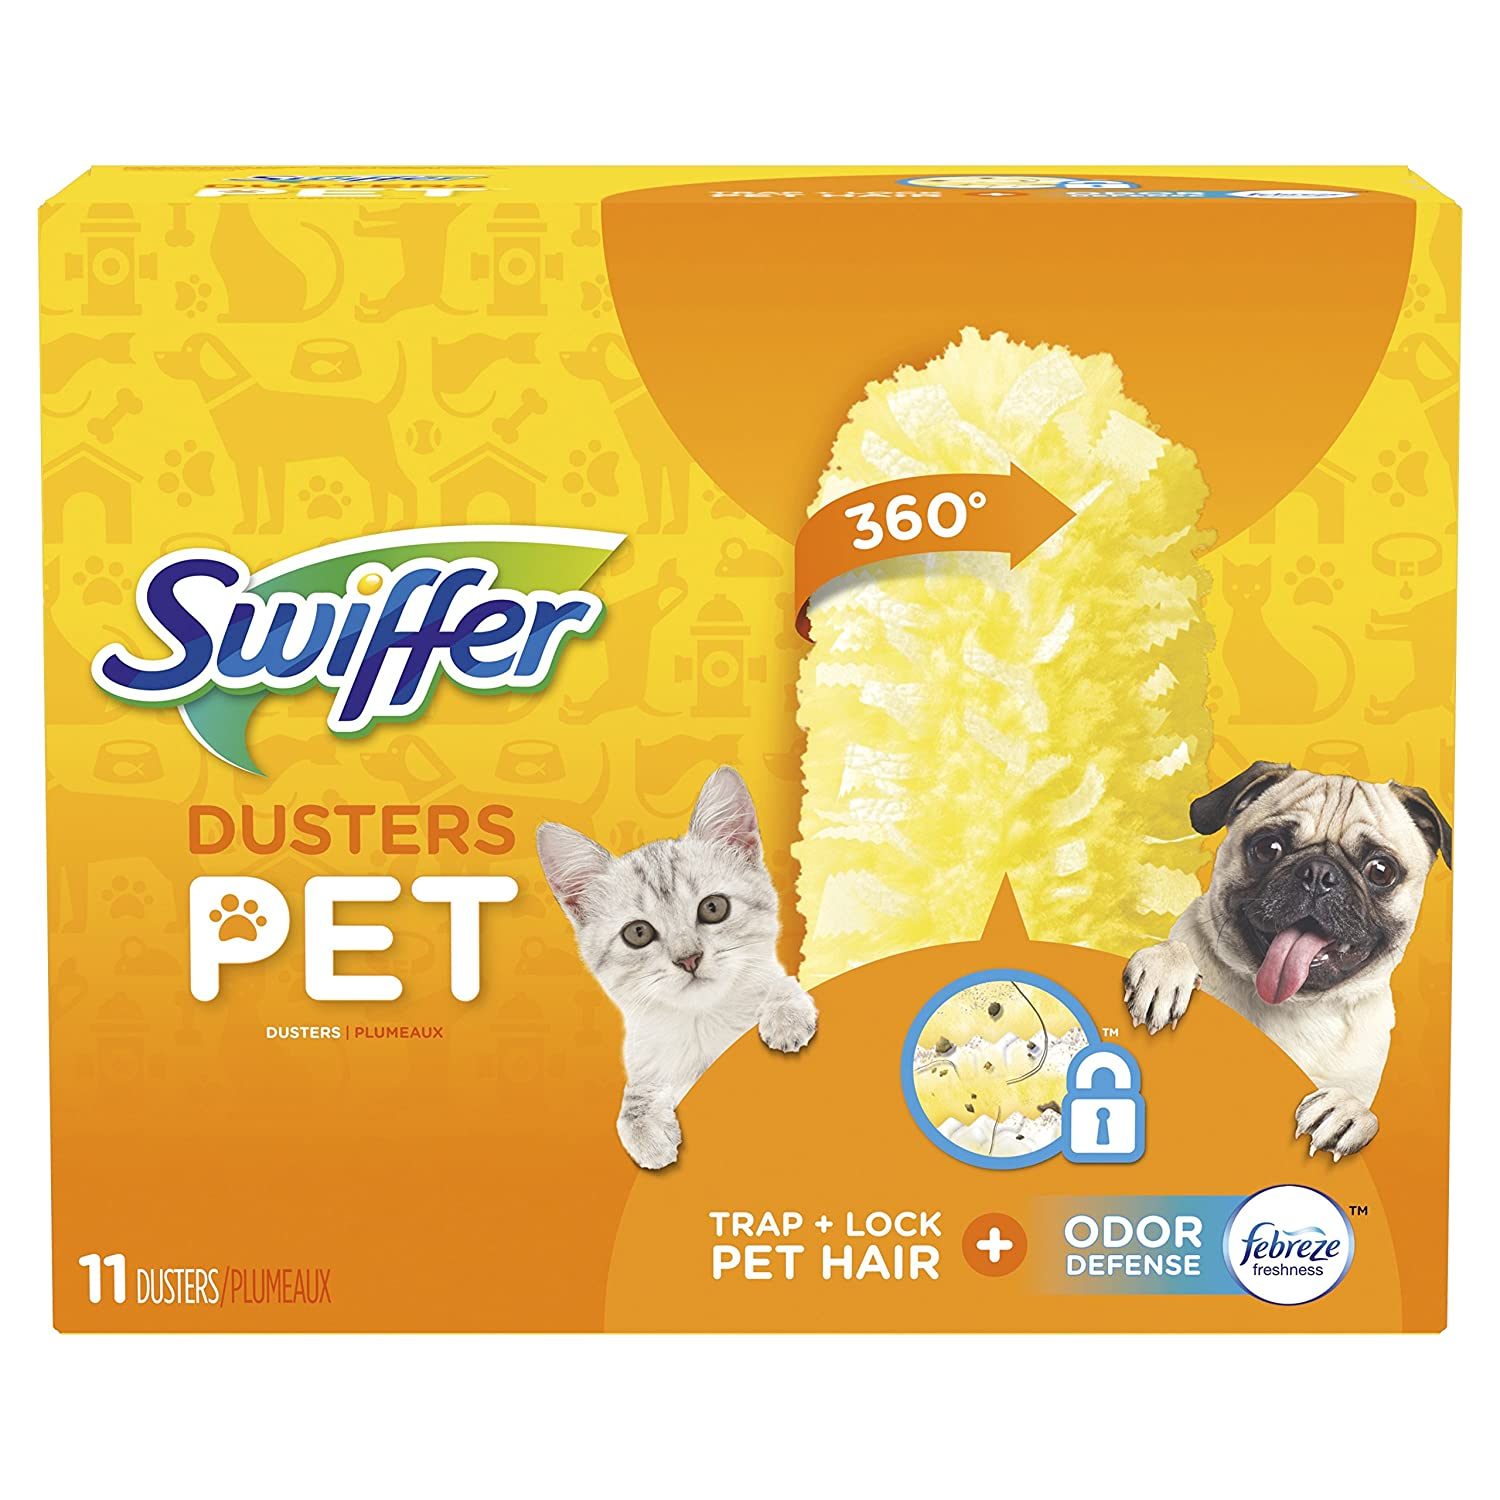 Swiffer Dusters Pet Refills, 11 Count